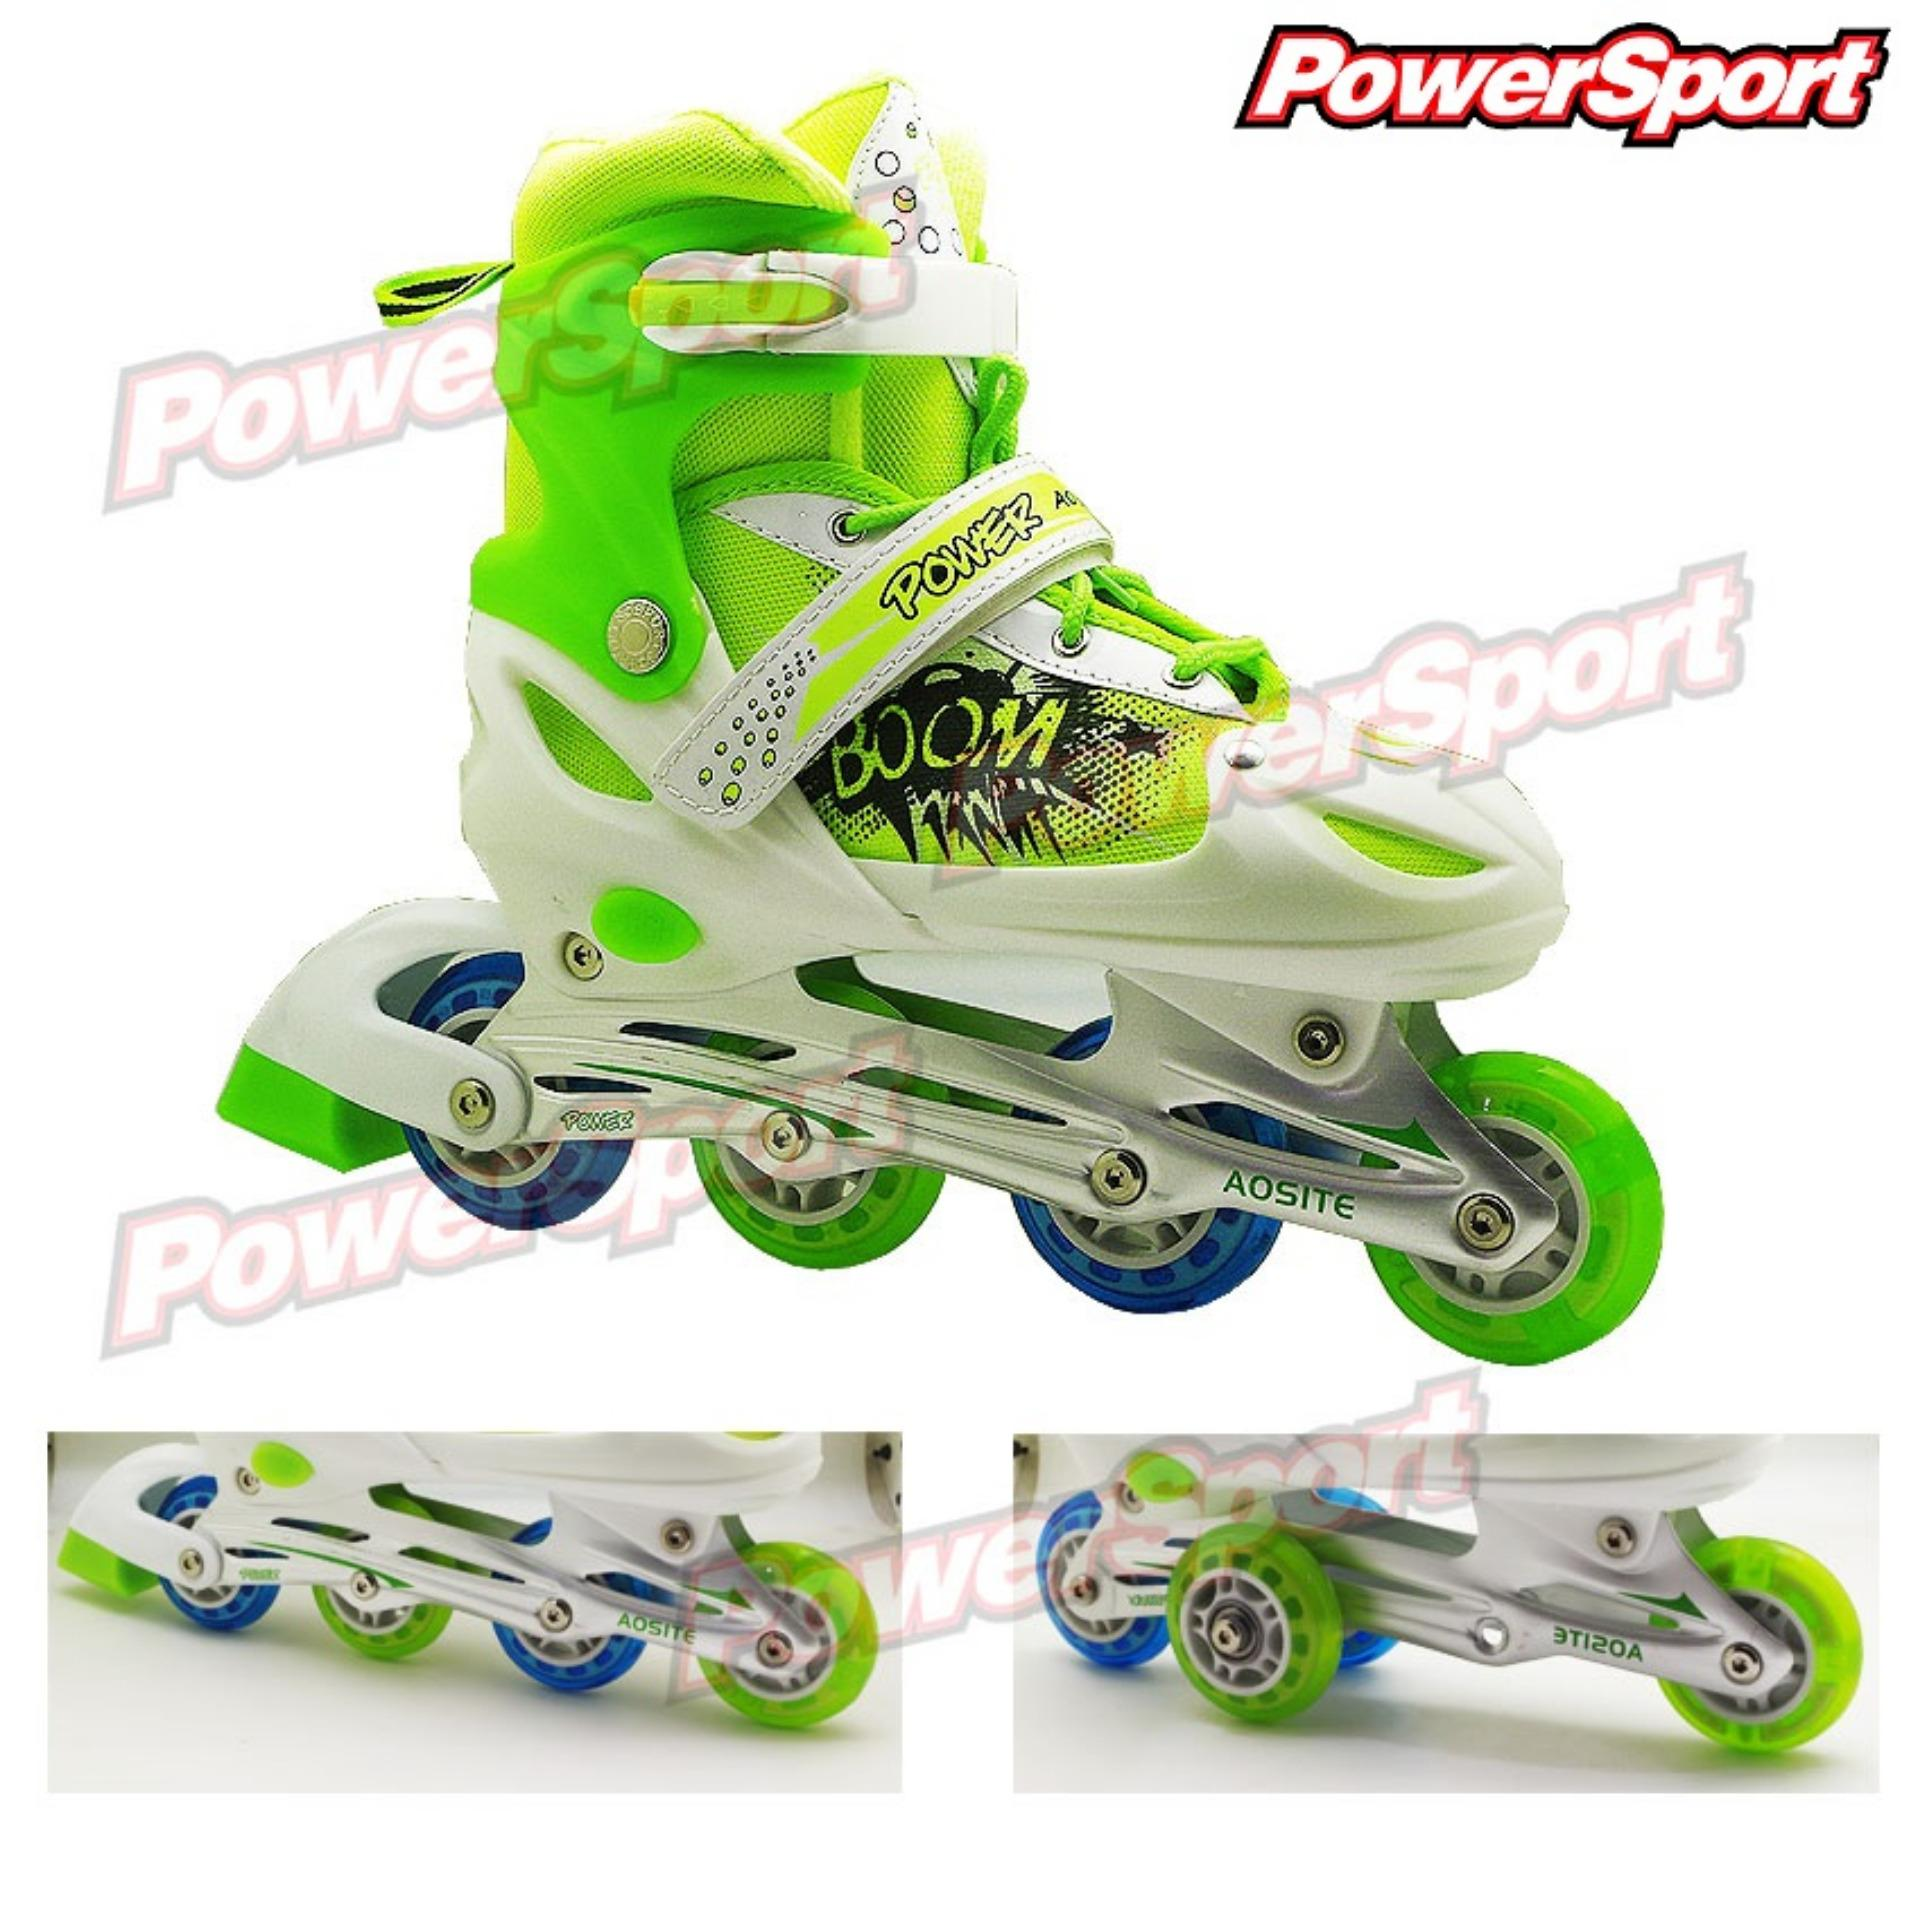 Jual Powersport Boom Inline Skate Sepatu Roda Light Up Adjustable Wheel L 38 42 Antik